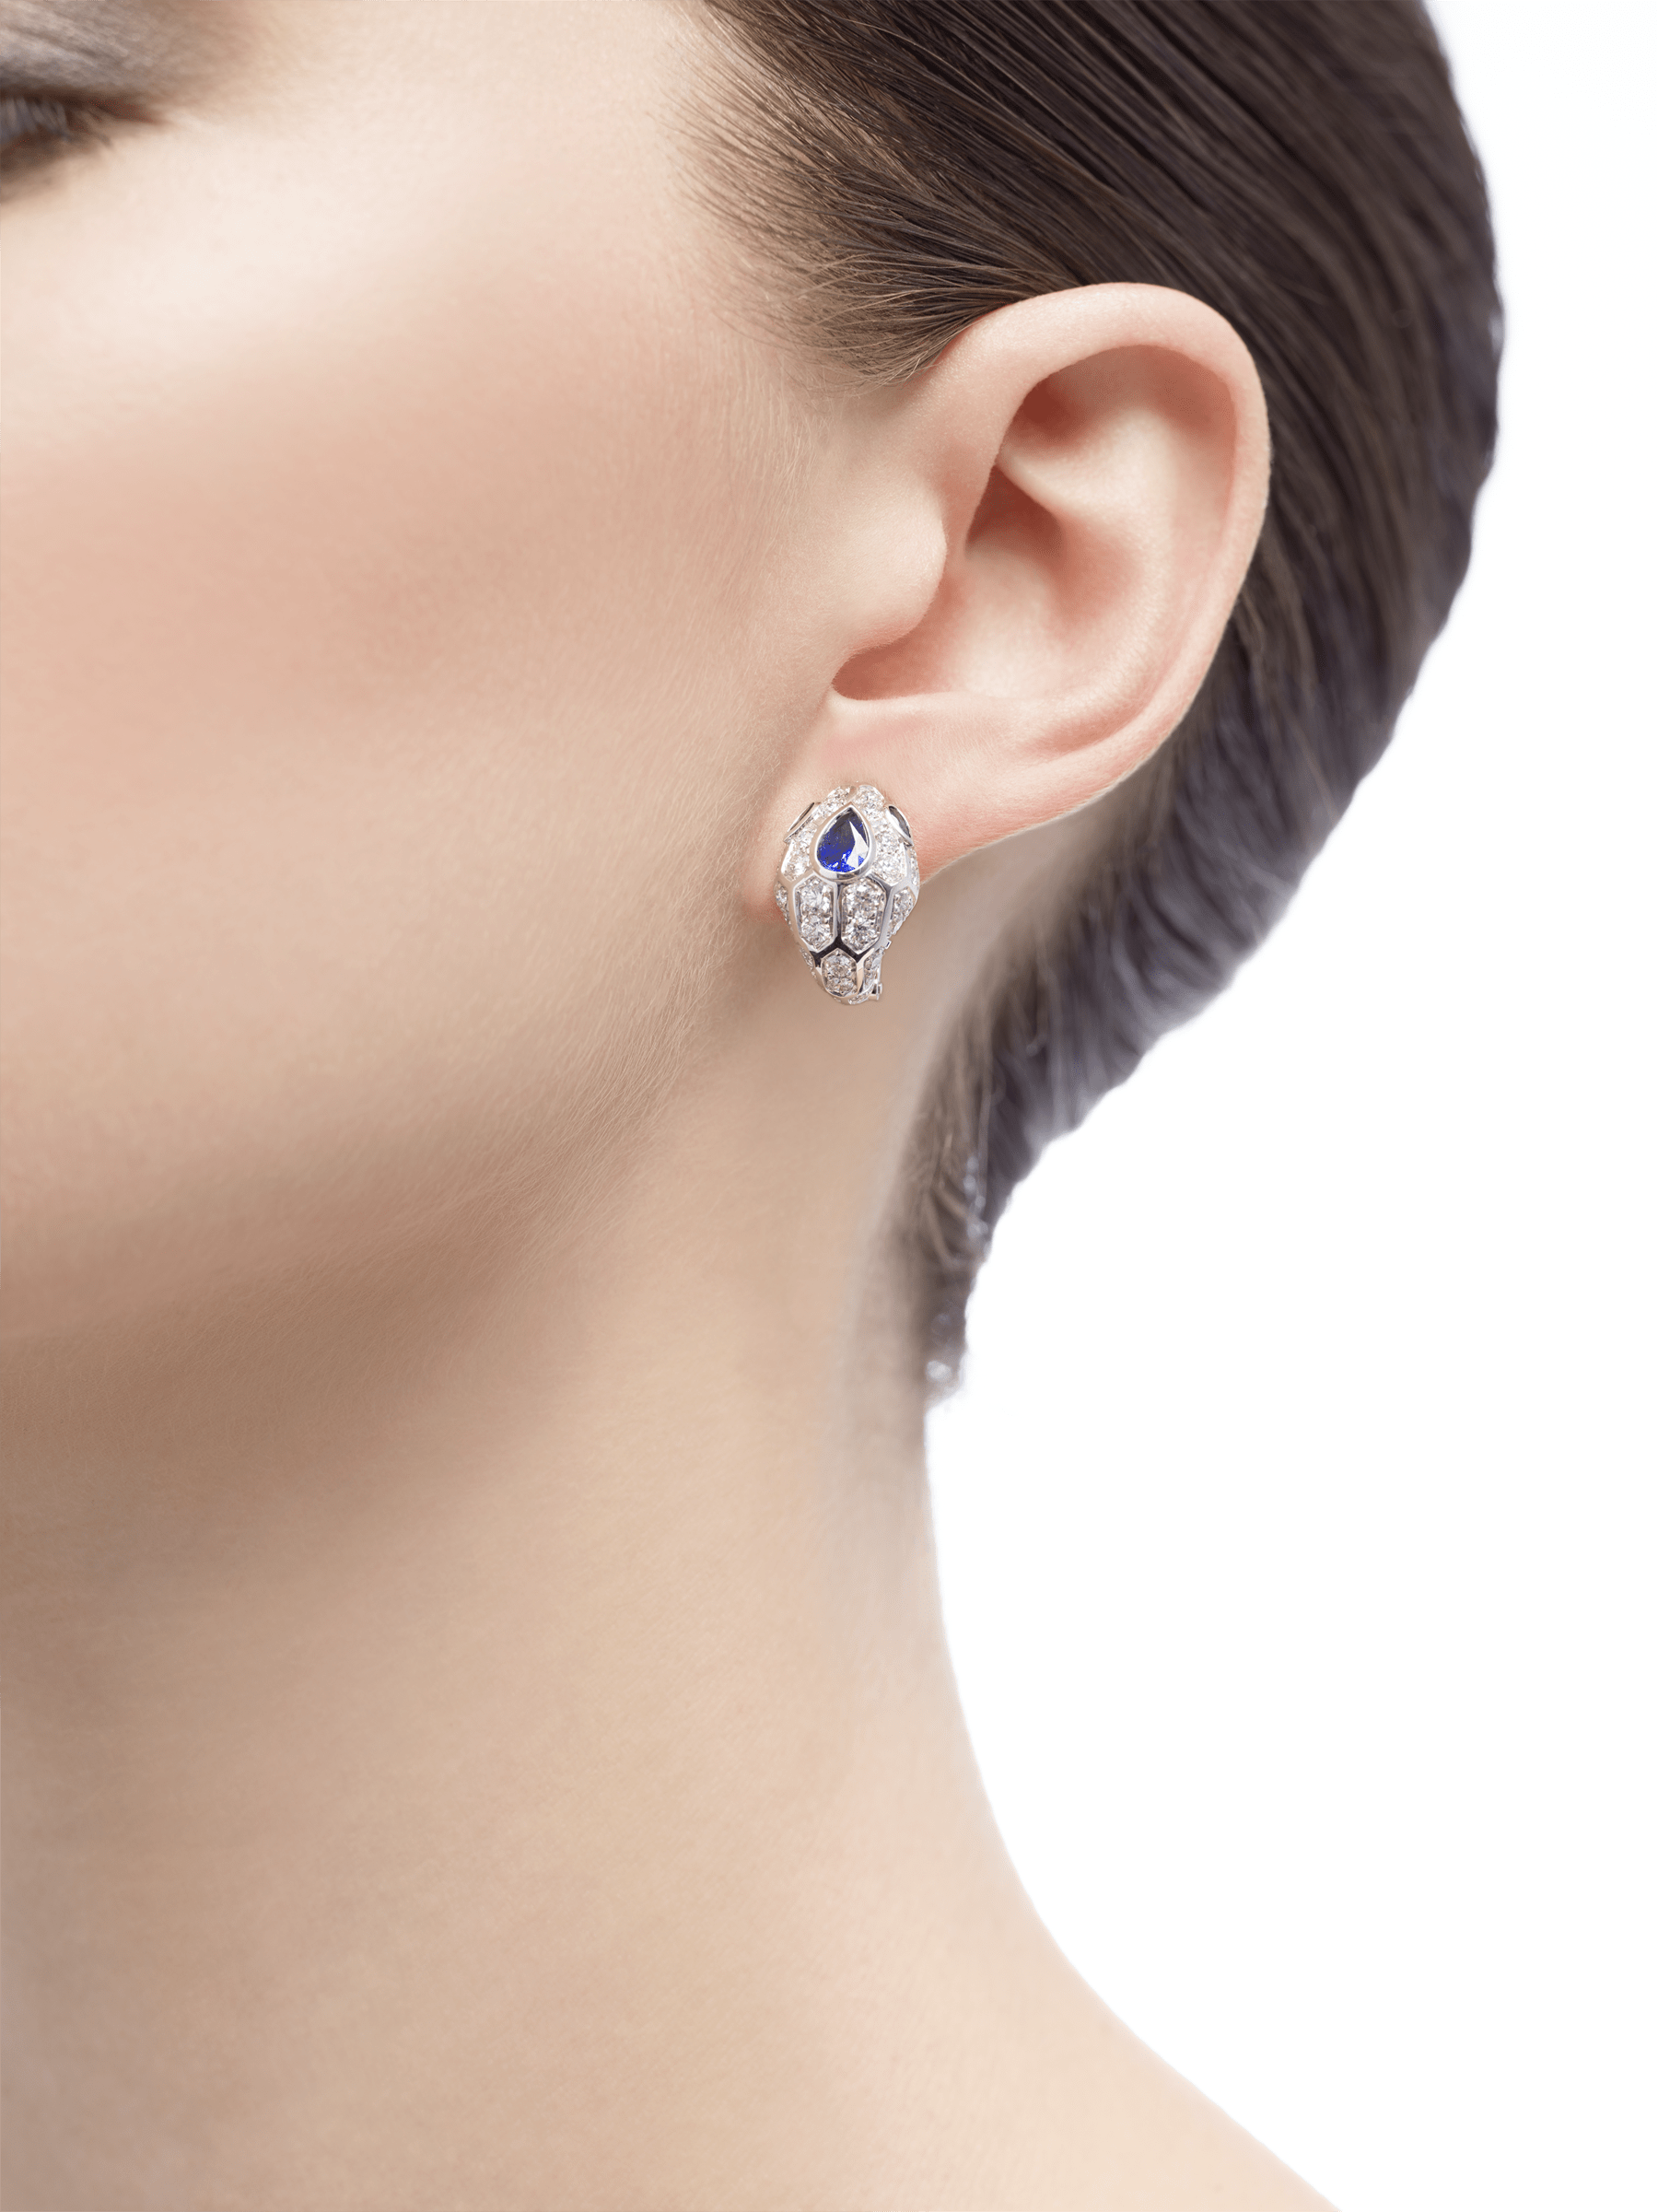 Serpenti 18 kt white gold earrings set with a blue sapphire on the head, emerald eyes and pavé diamonds 355355 image 3